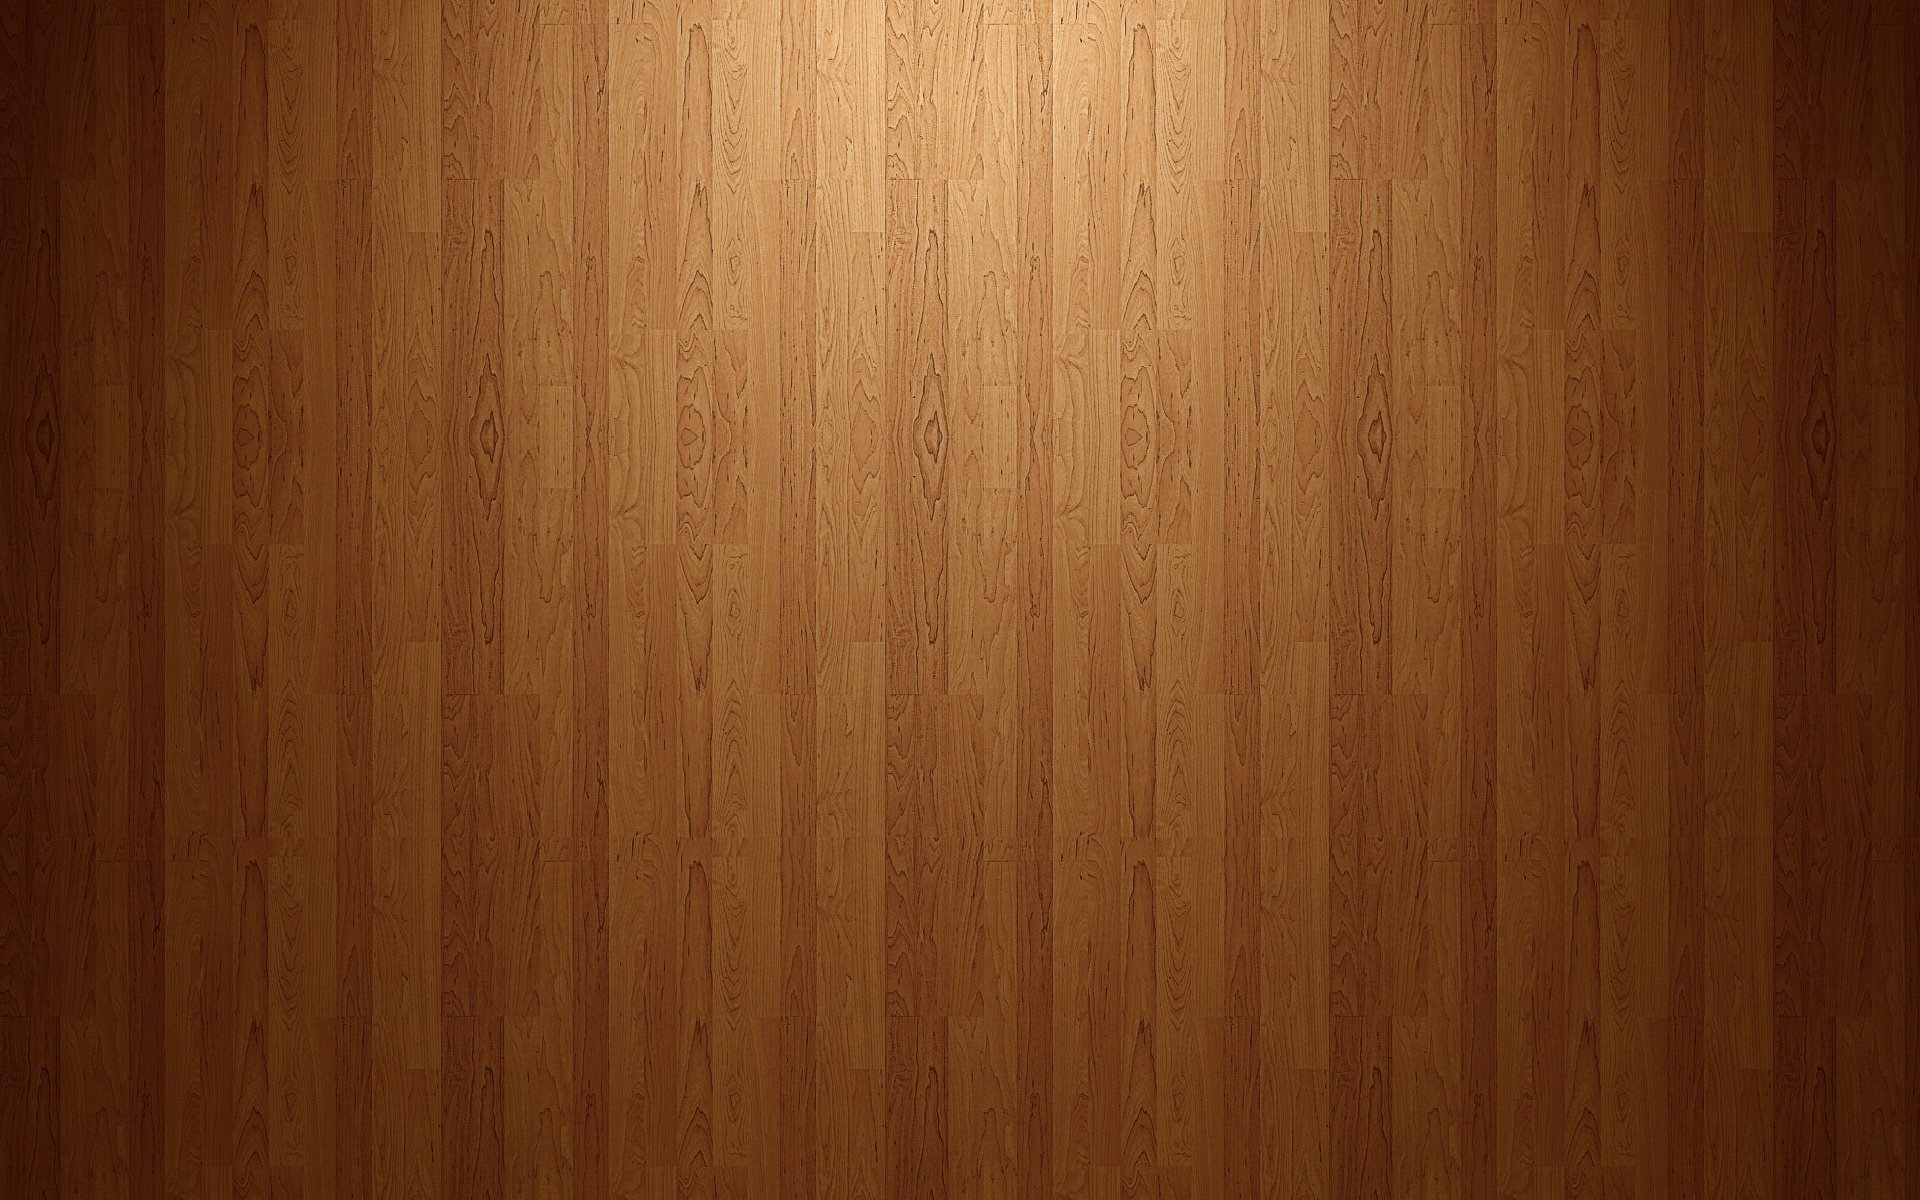 197 Wood HD Wallpapers Background Images 1920x1200